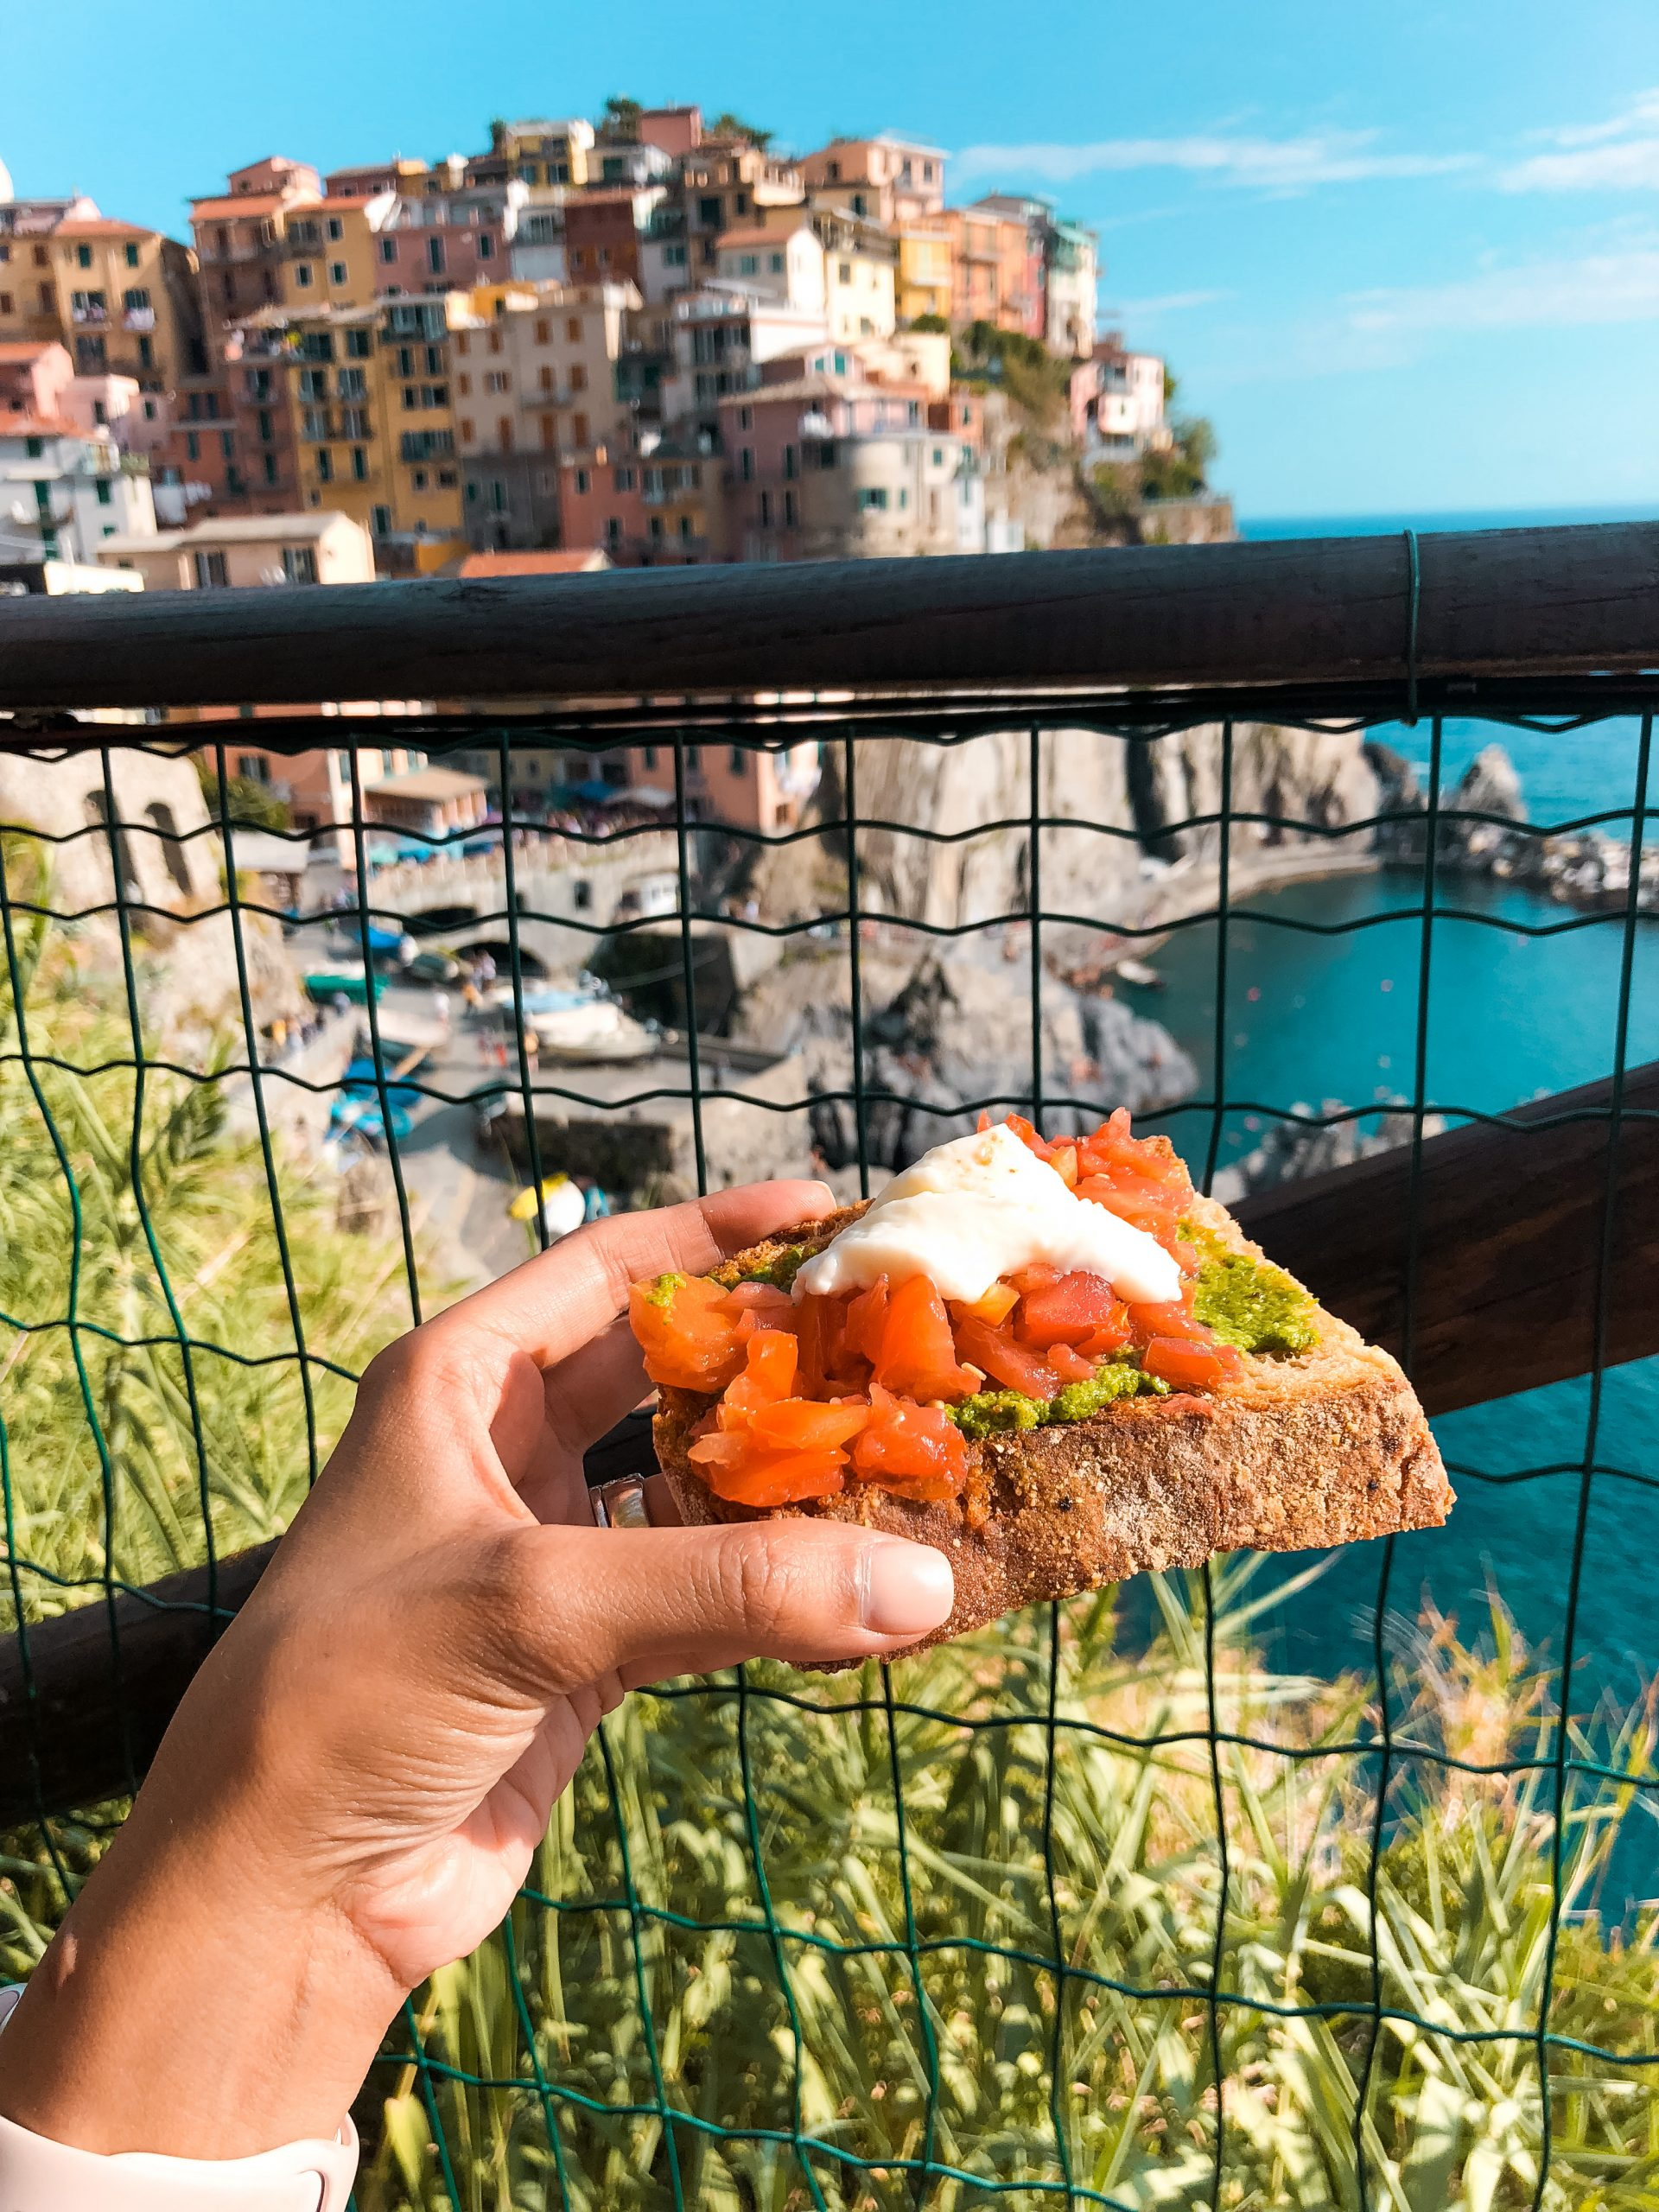 tomatoes, pesto, and ricotta on bread with Vernazza coastline in the backdrop